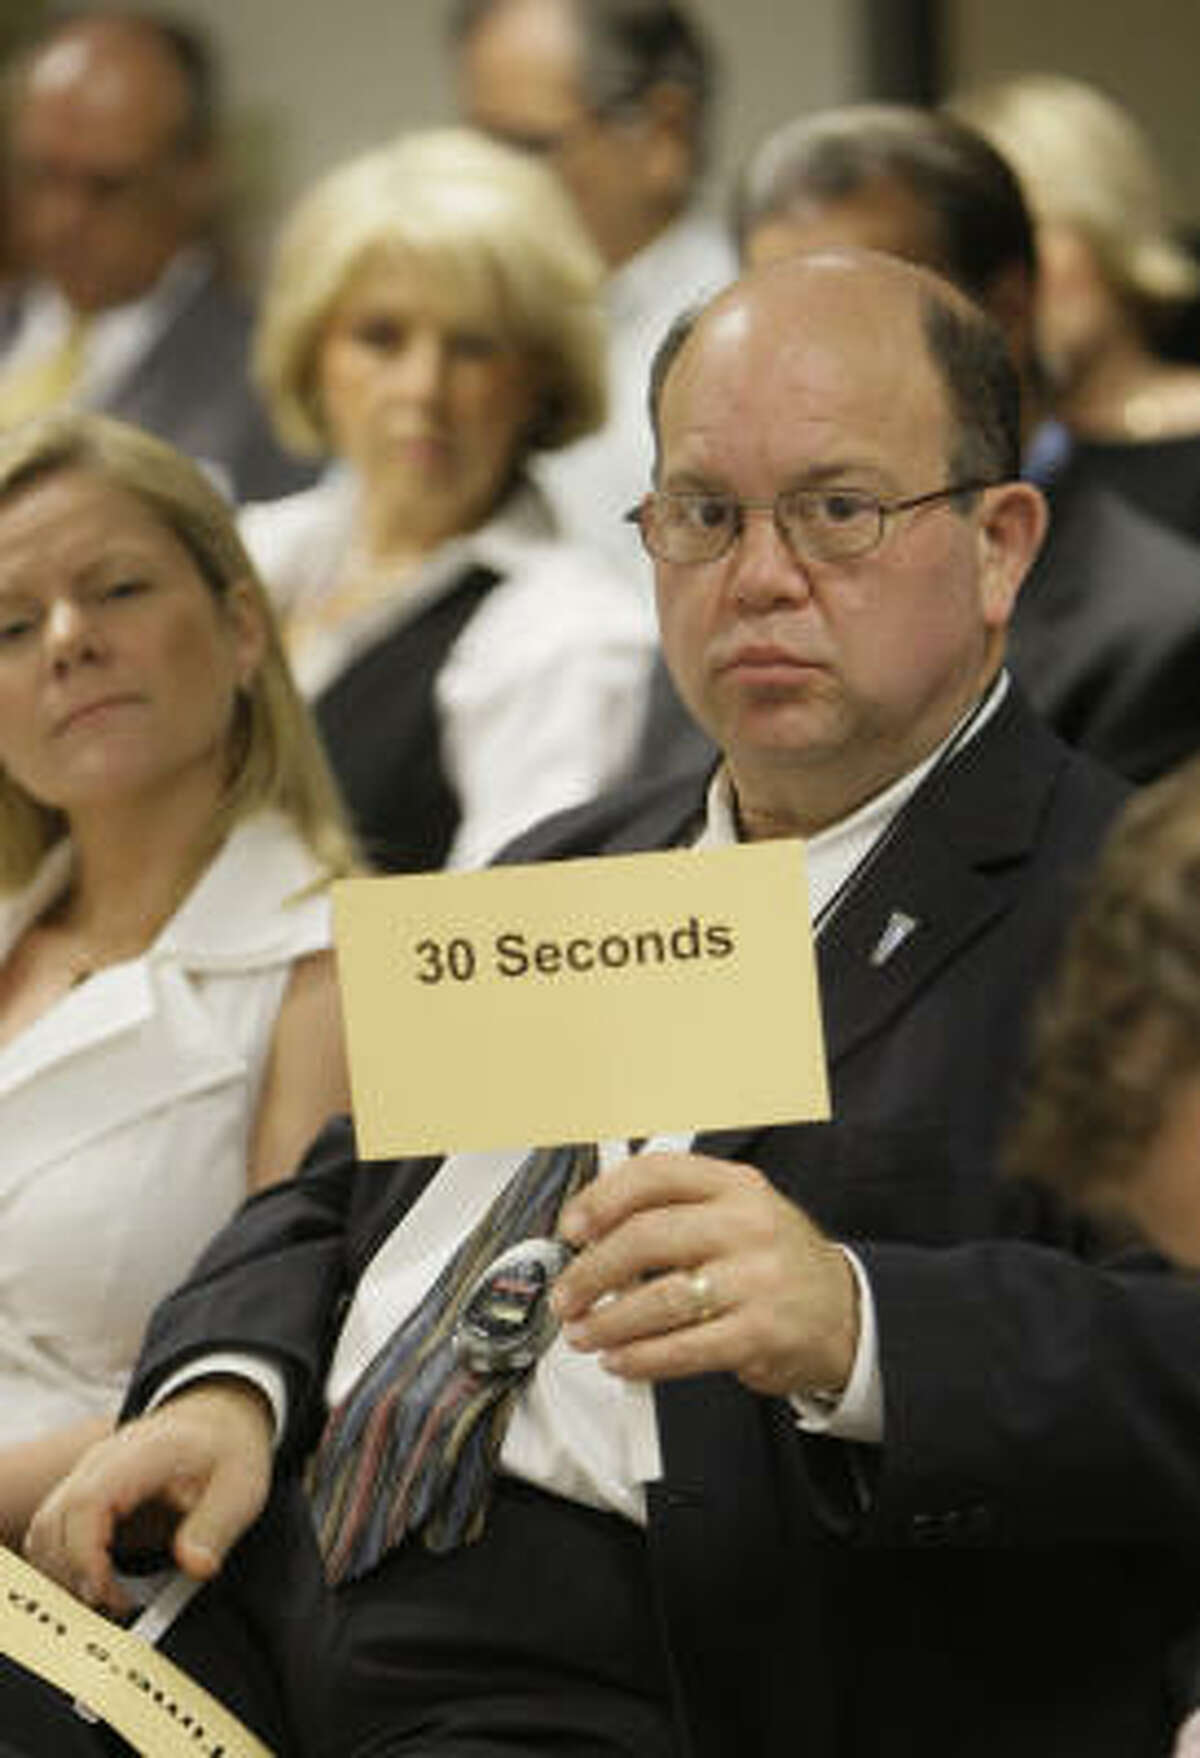 Dave Gilkeson with the Houston West Chamber of Commerce works as timekeeper during a candidate forum Tuesday.